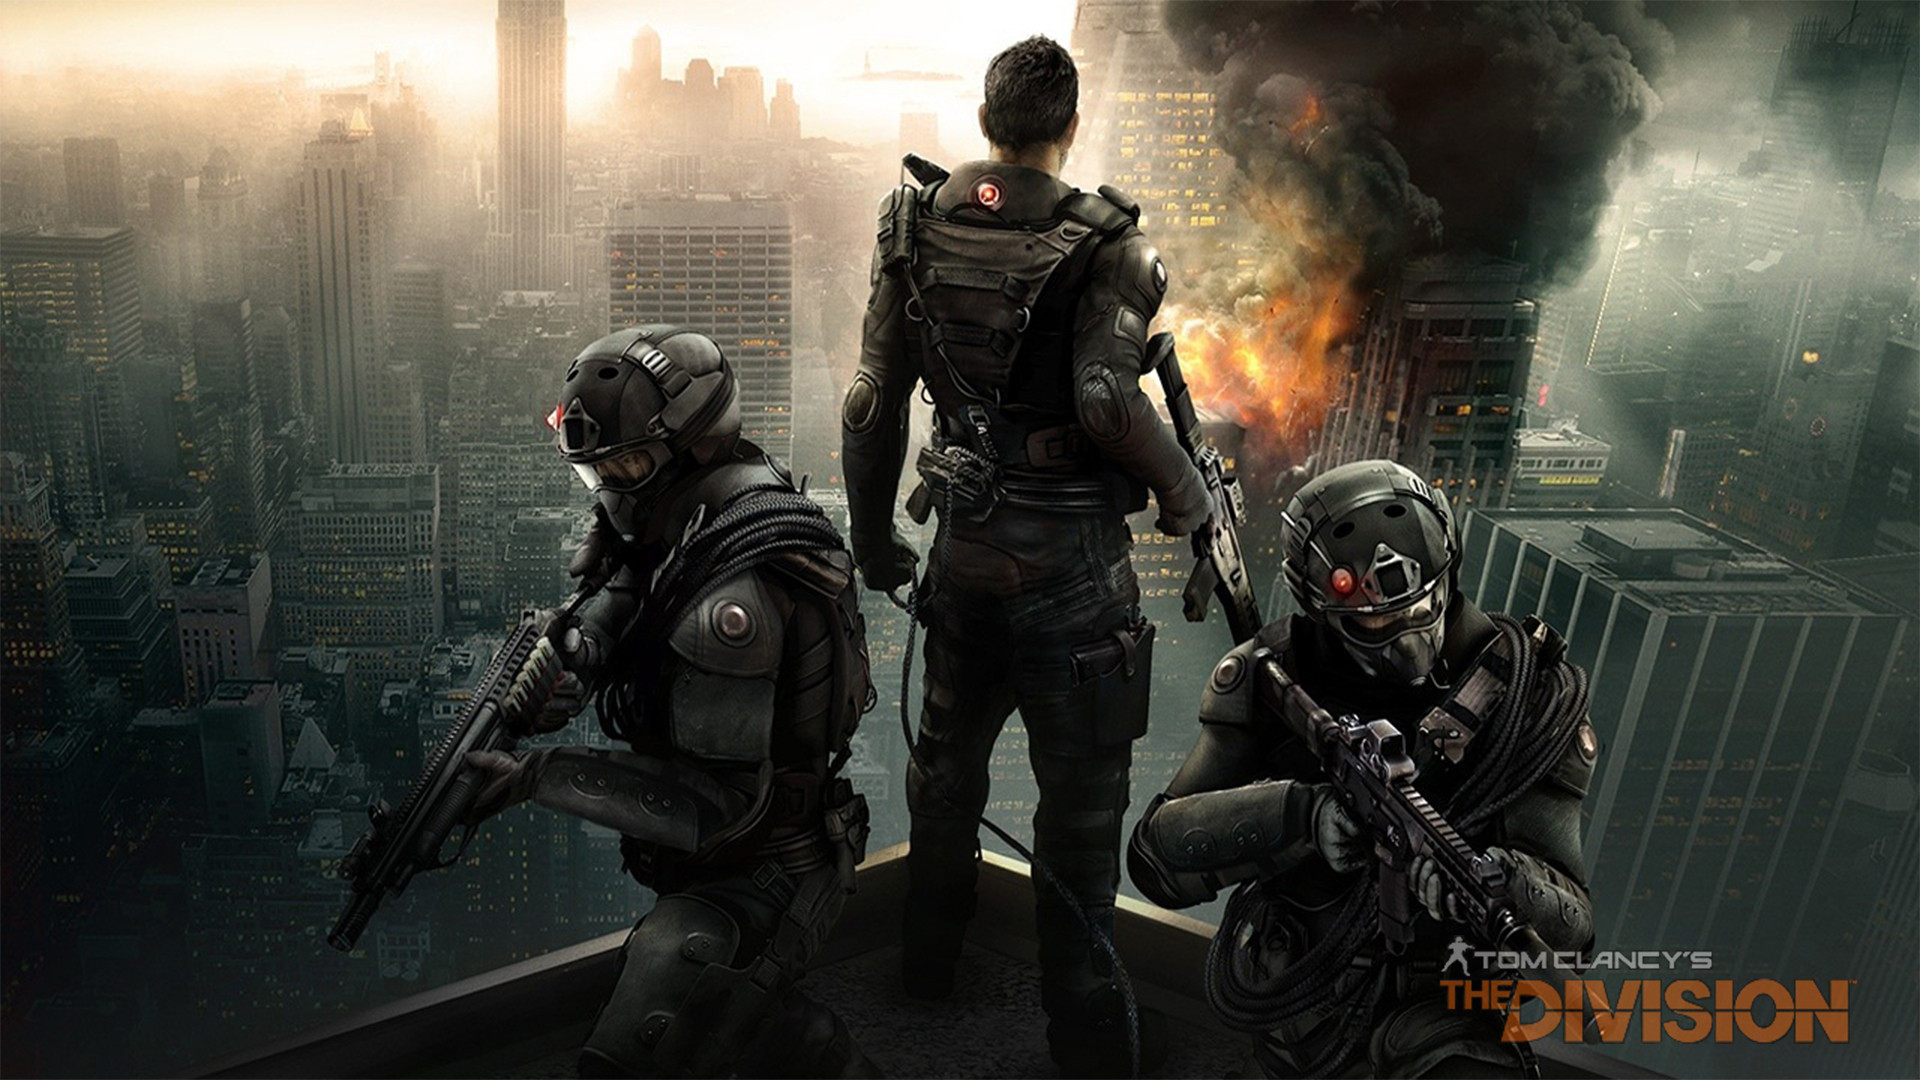 Tom clancy s the ision guide tips for beginners